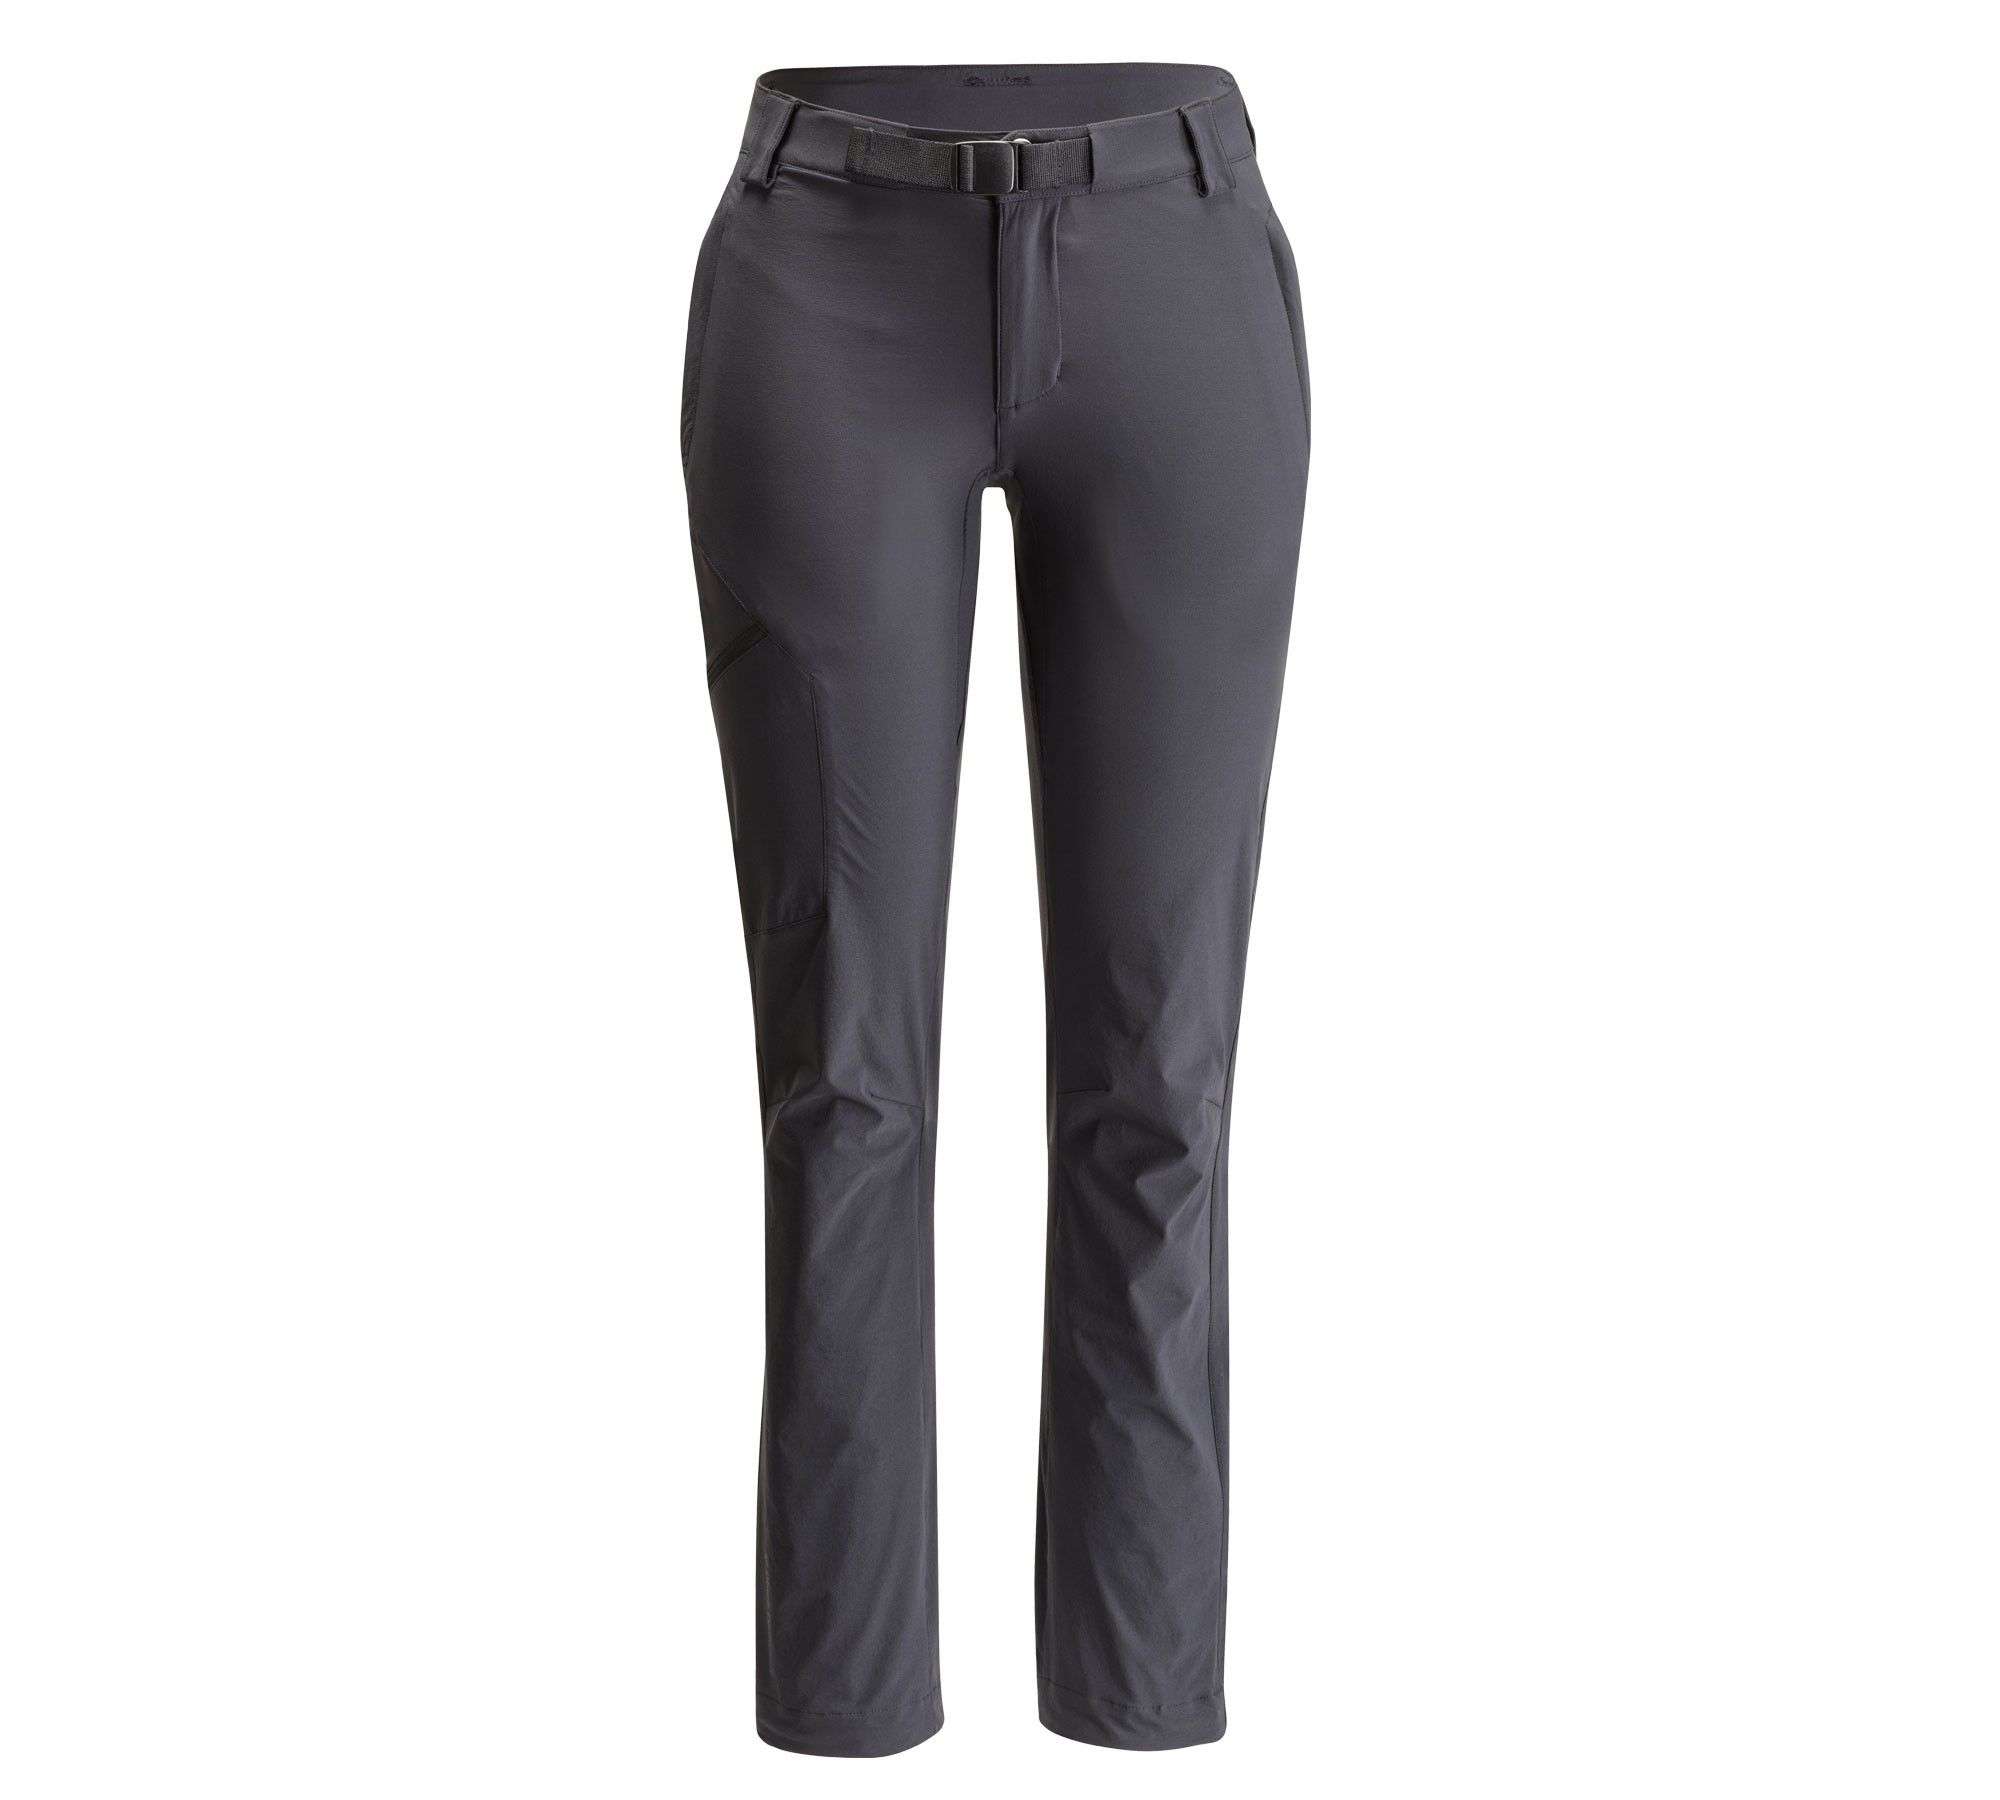 Black Diamond Alpine Pant Grau, Female Hose, M